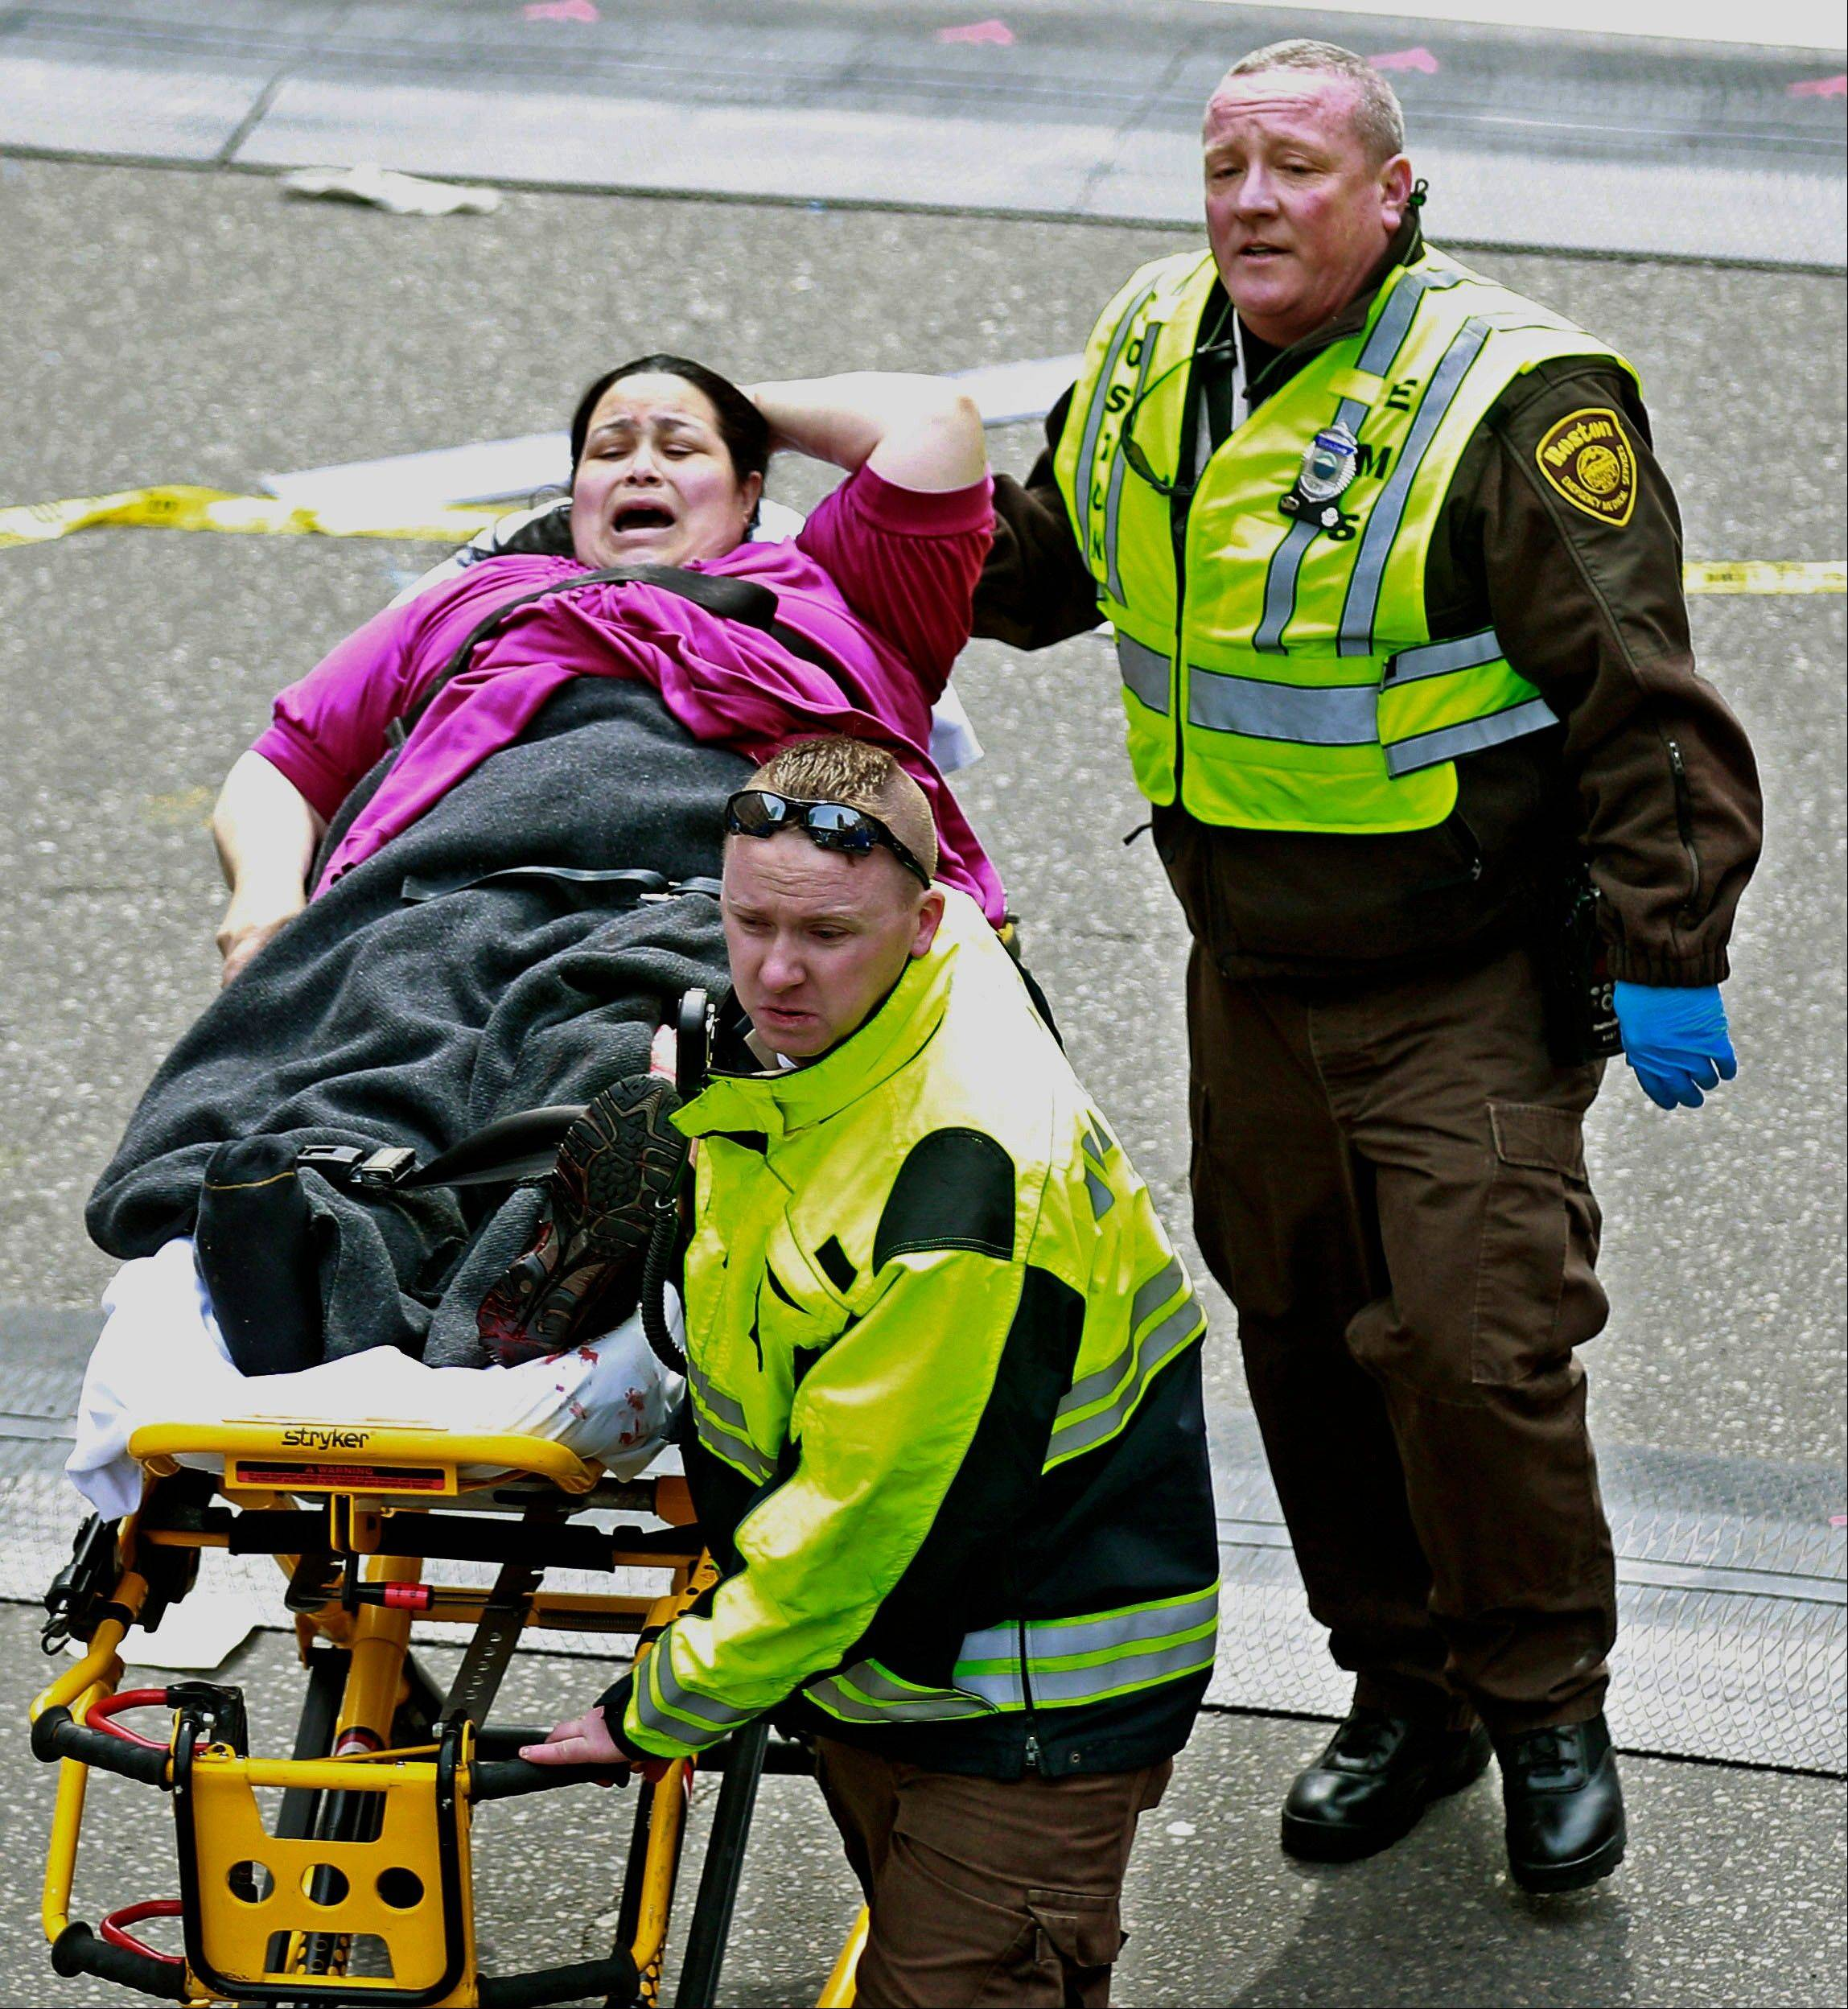 Medical workers aid an injured woman at the finish line of the 2013 Boston Marathon following two explosions there, Monday, April 15, 2013 in Boston. Two bombs exploded near the finish of the Boston Marathon on Monday, killing at least two people, injuring at least 23 others and sending authorities rushing to aid wounded spectators.